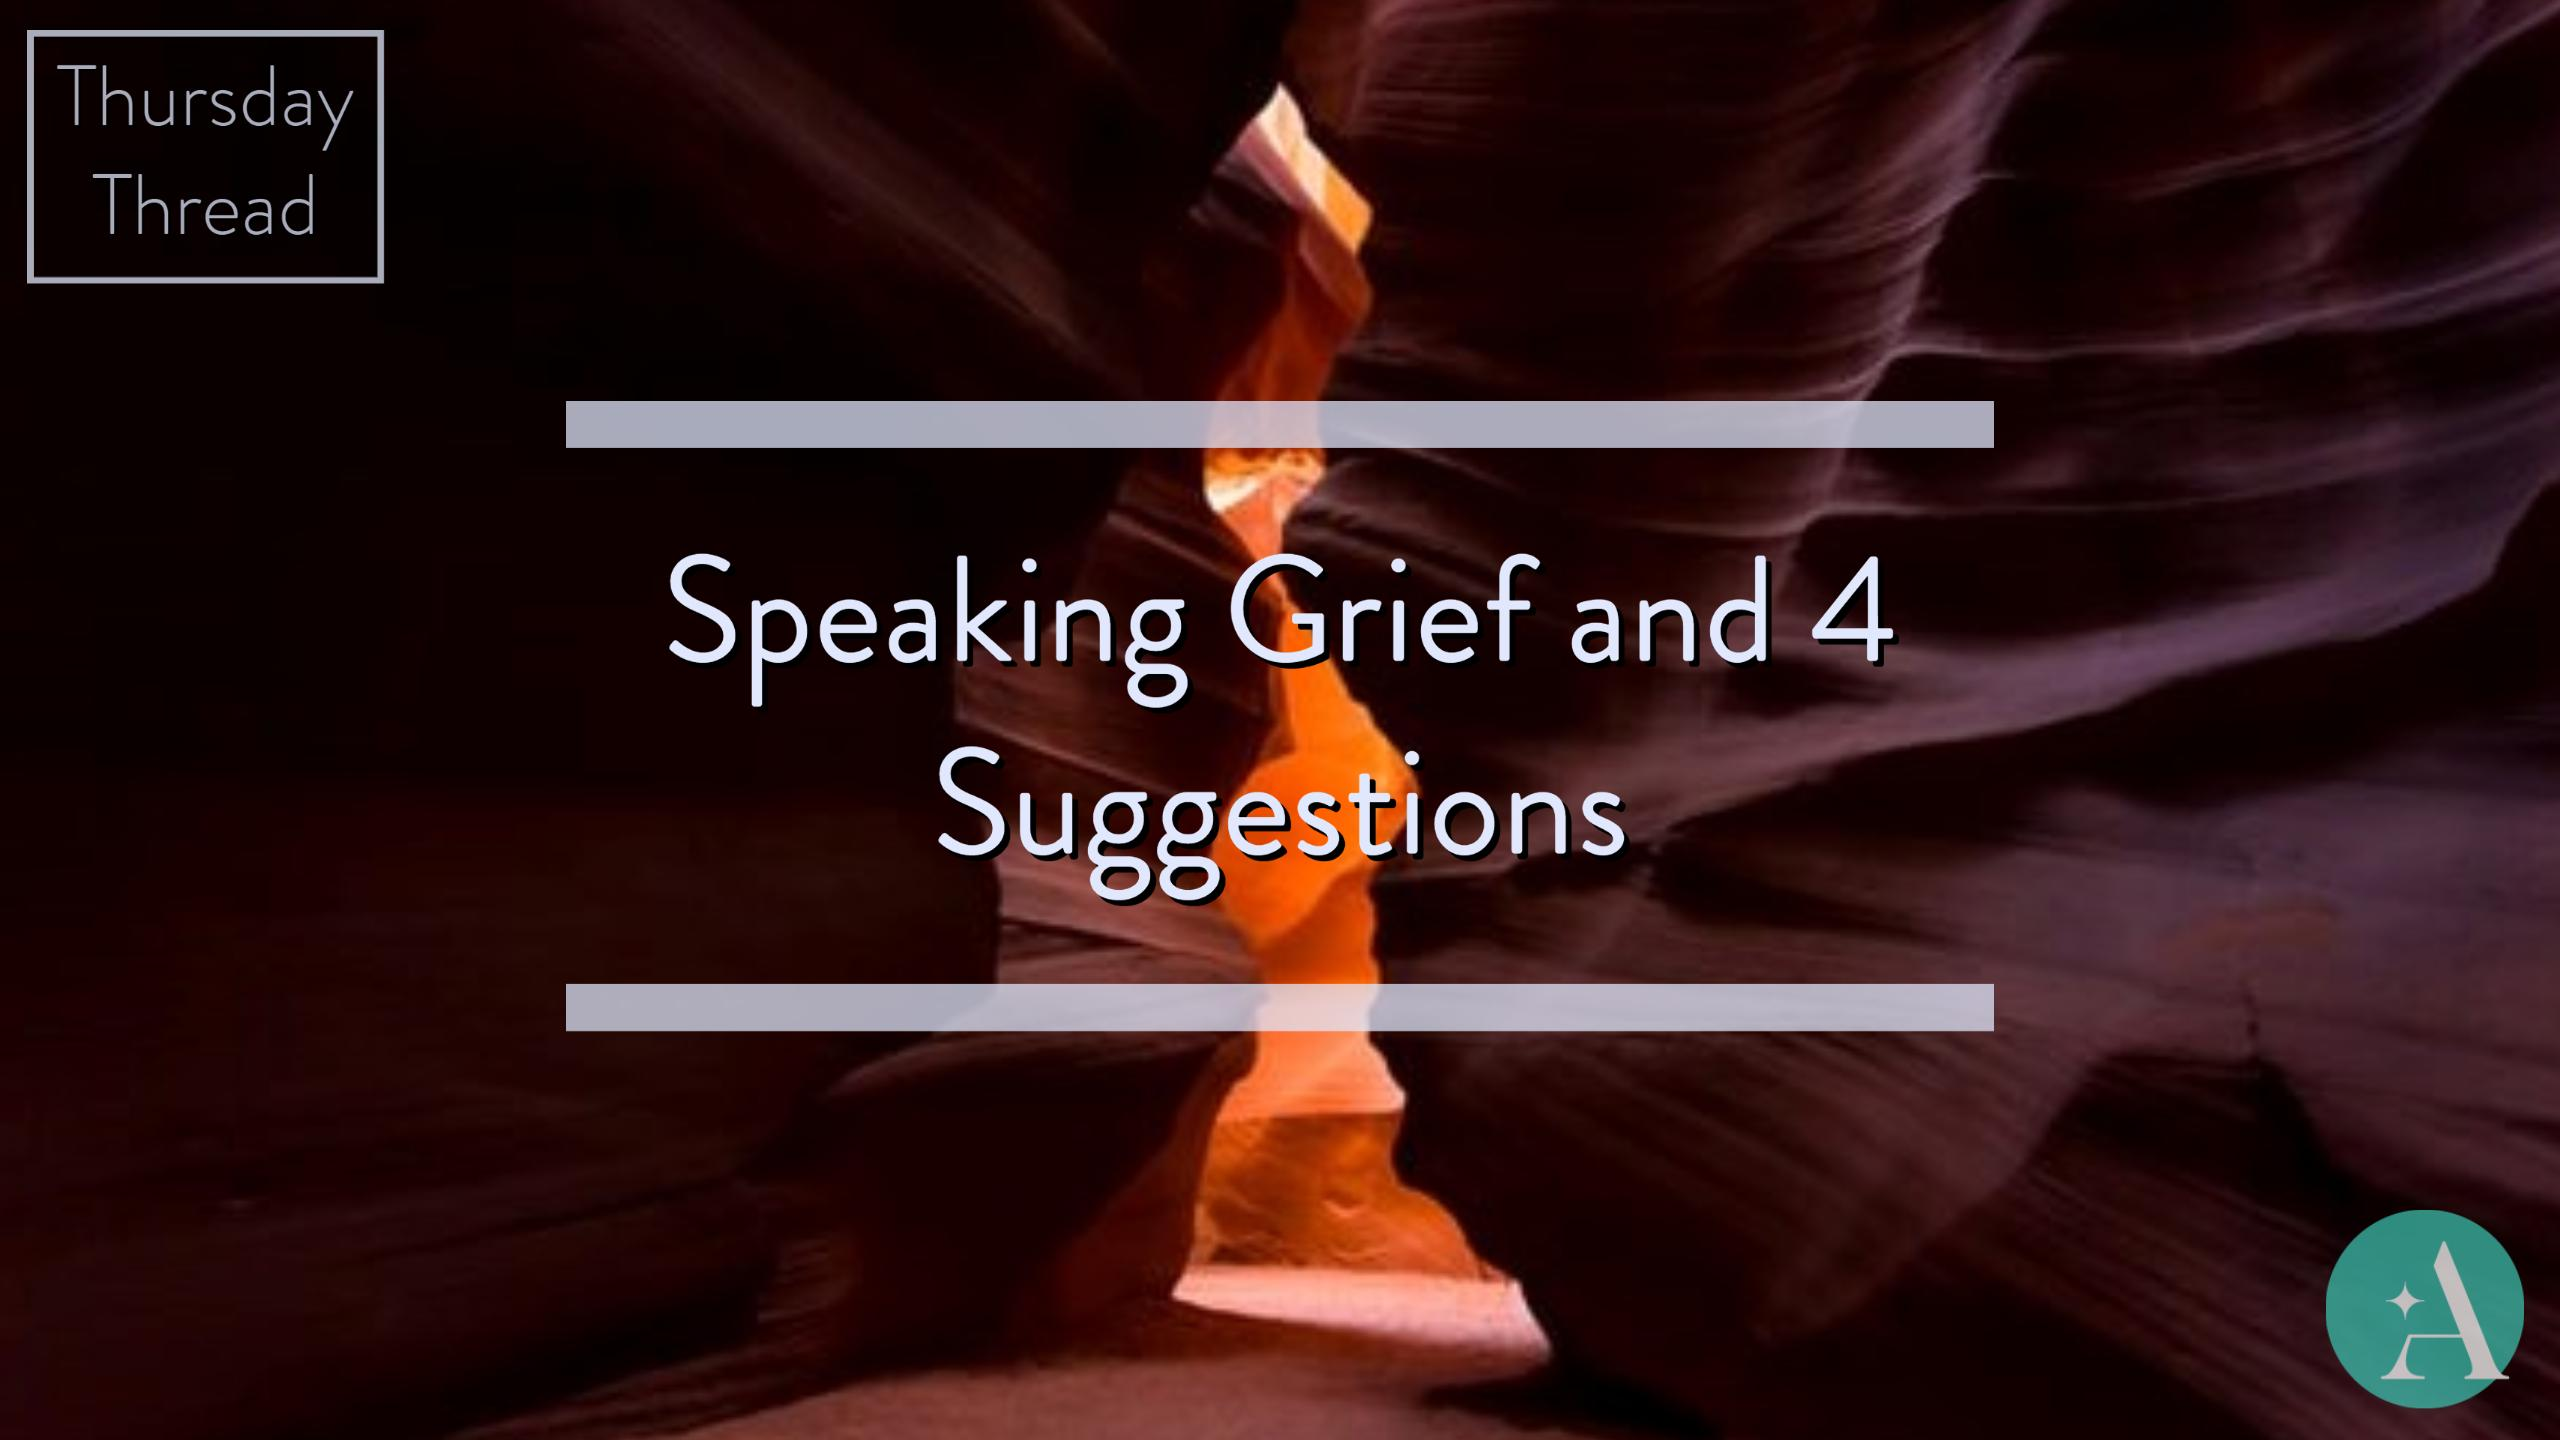 Thursday Thread: Speaking Grief and 4 Suggestions Thumbnail